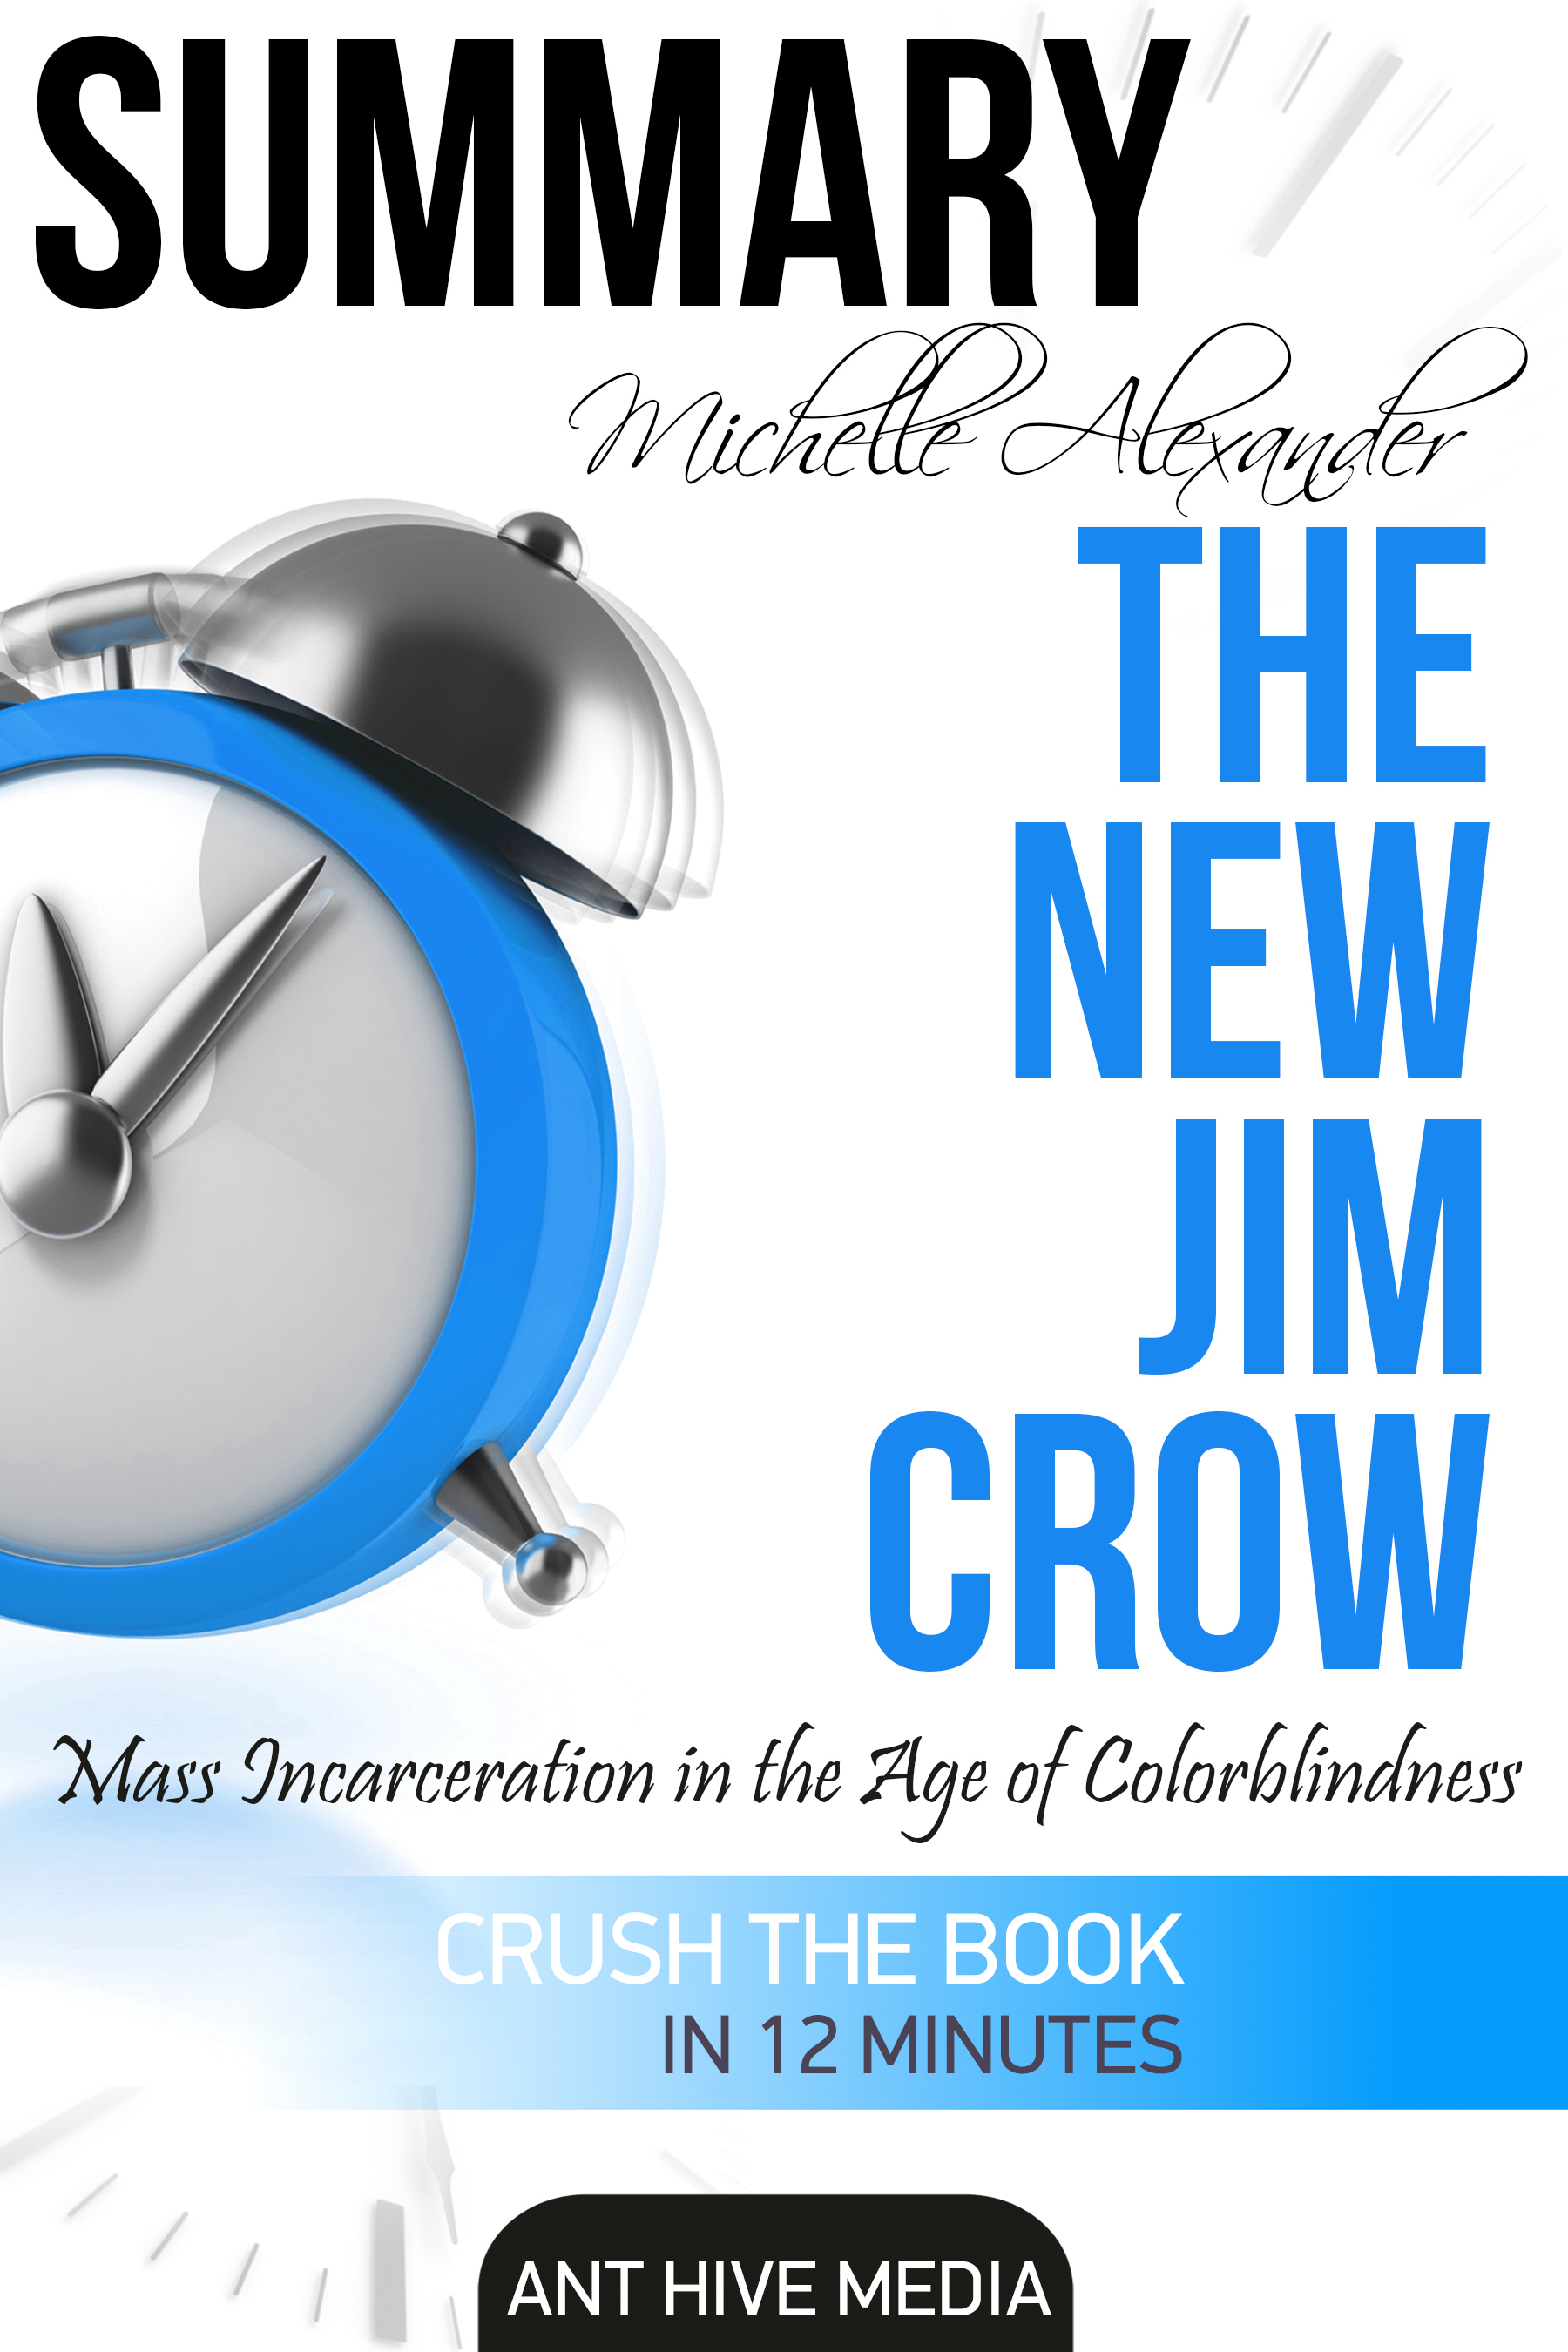 Michelle Alexander's The New Jim Crow: Mass Incarceration in the Age of Colorblindness | Summary